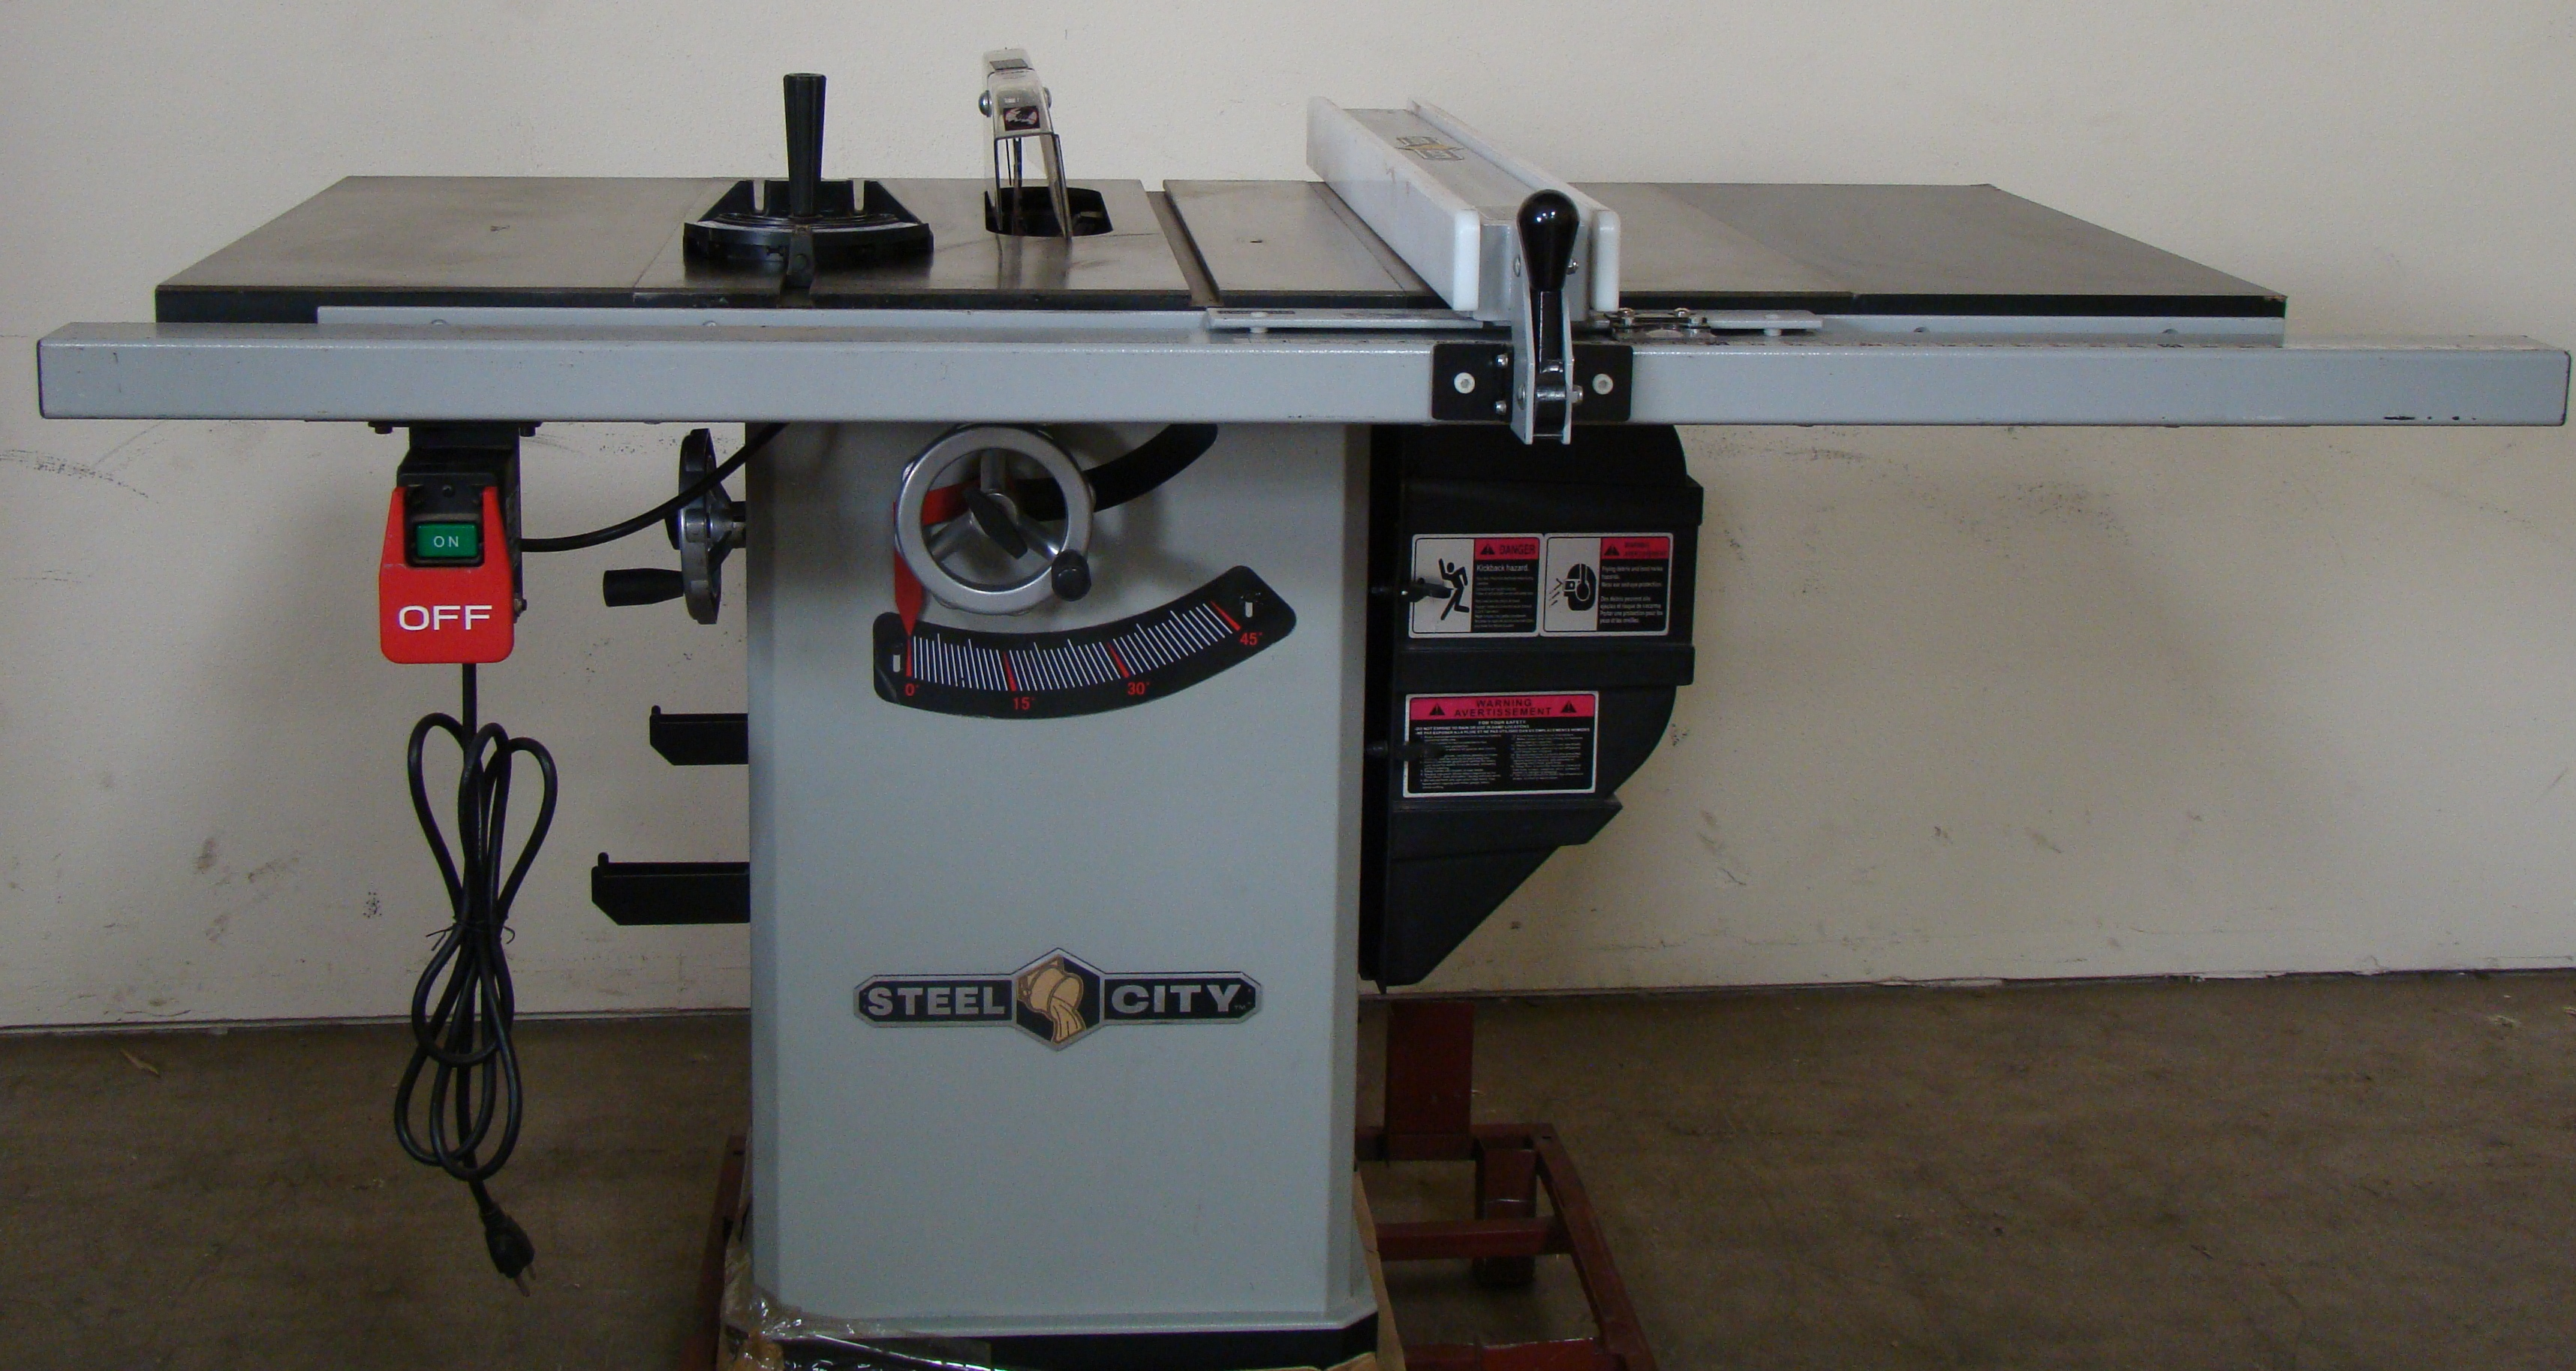 """Steel City Table/Cabinet Saw Model 35600, 34"""" Rails 1-3/4 HP 120/240 Volt 1PH - Image 6 of 7"""